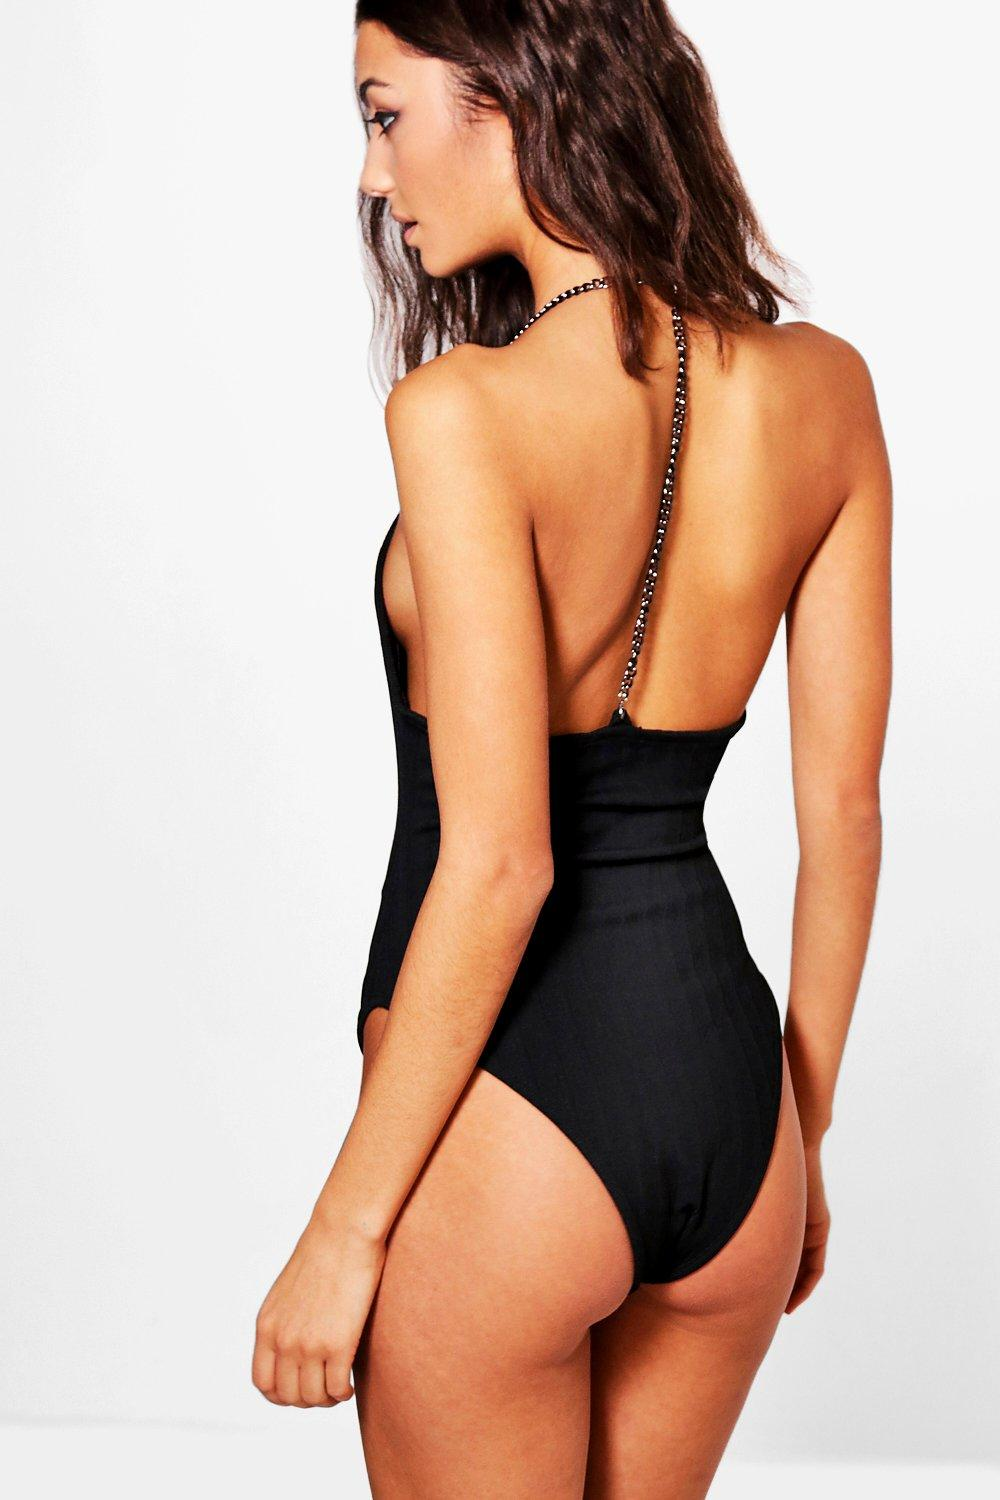 Tall Aanisah Premium Ribbed Chain Caged Back Body